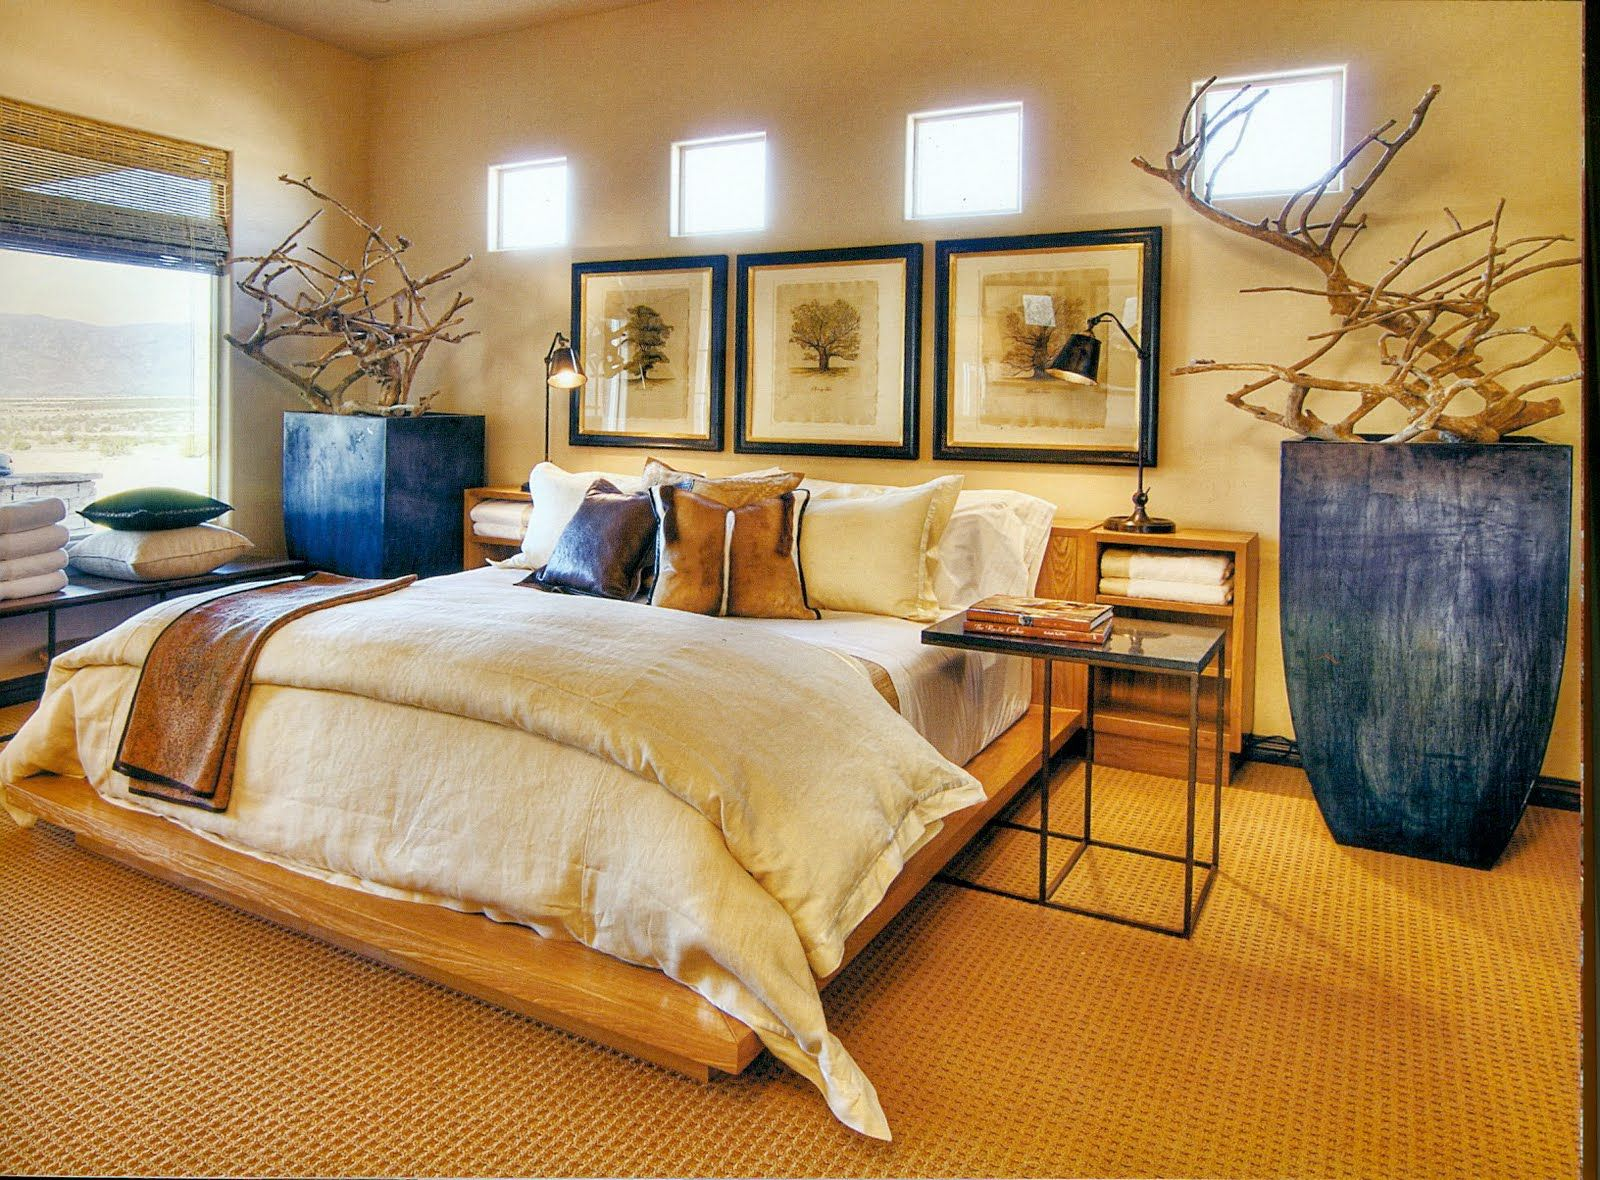 Home decorating ideas african theme  African bedroom, African